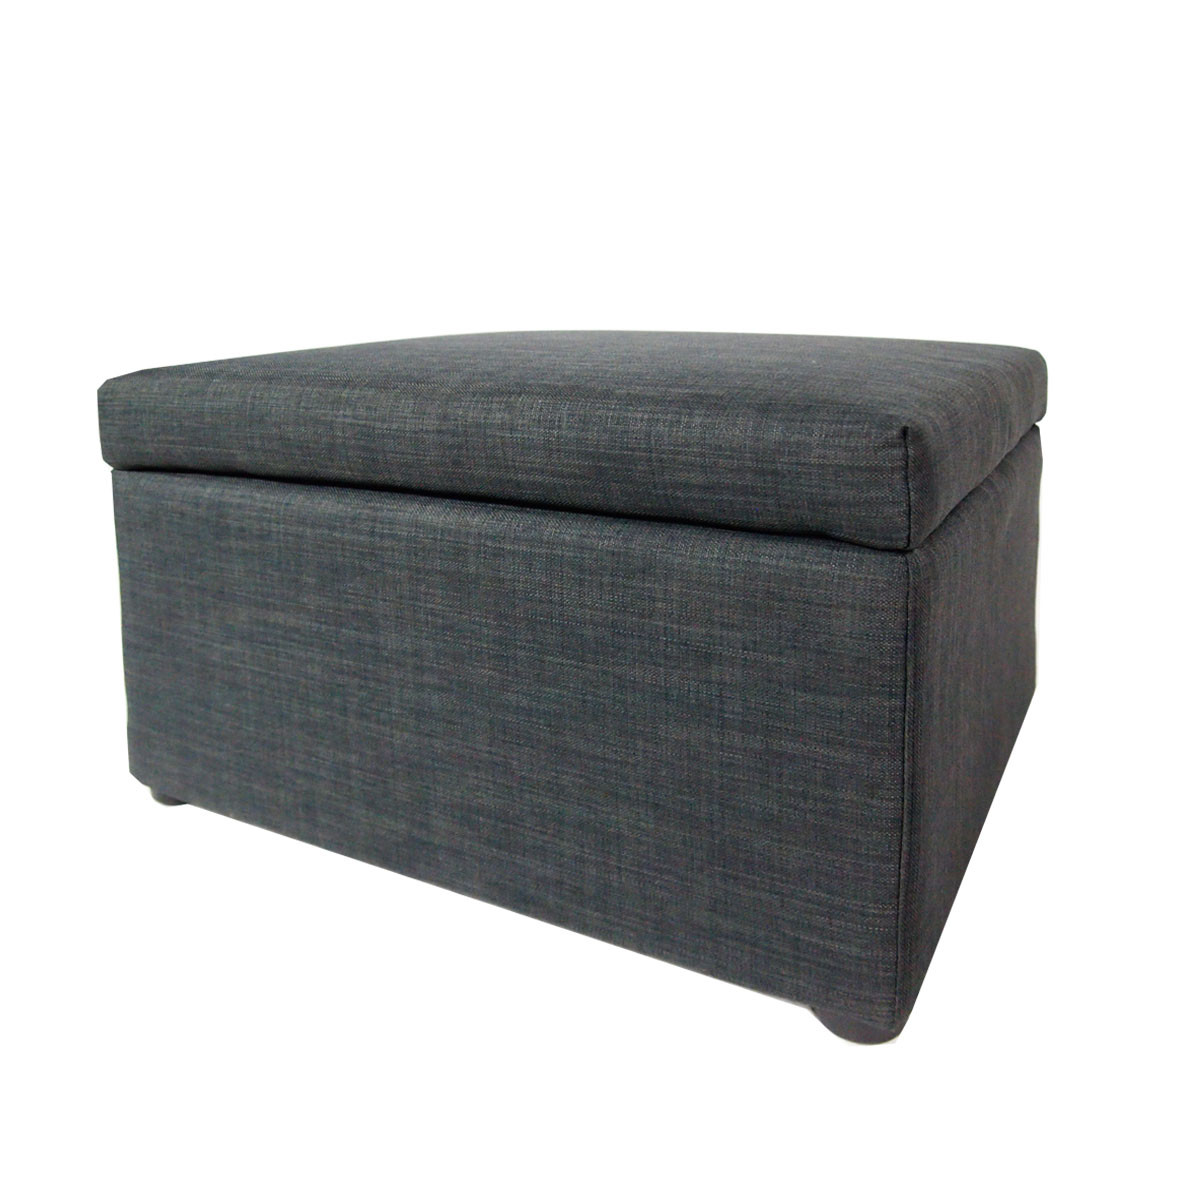 Ottoman Coffee Table Grey Furniture Home D Cor Fortytwo